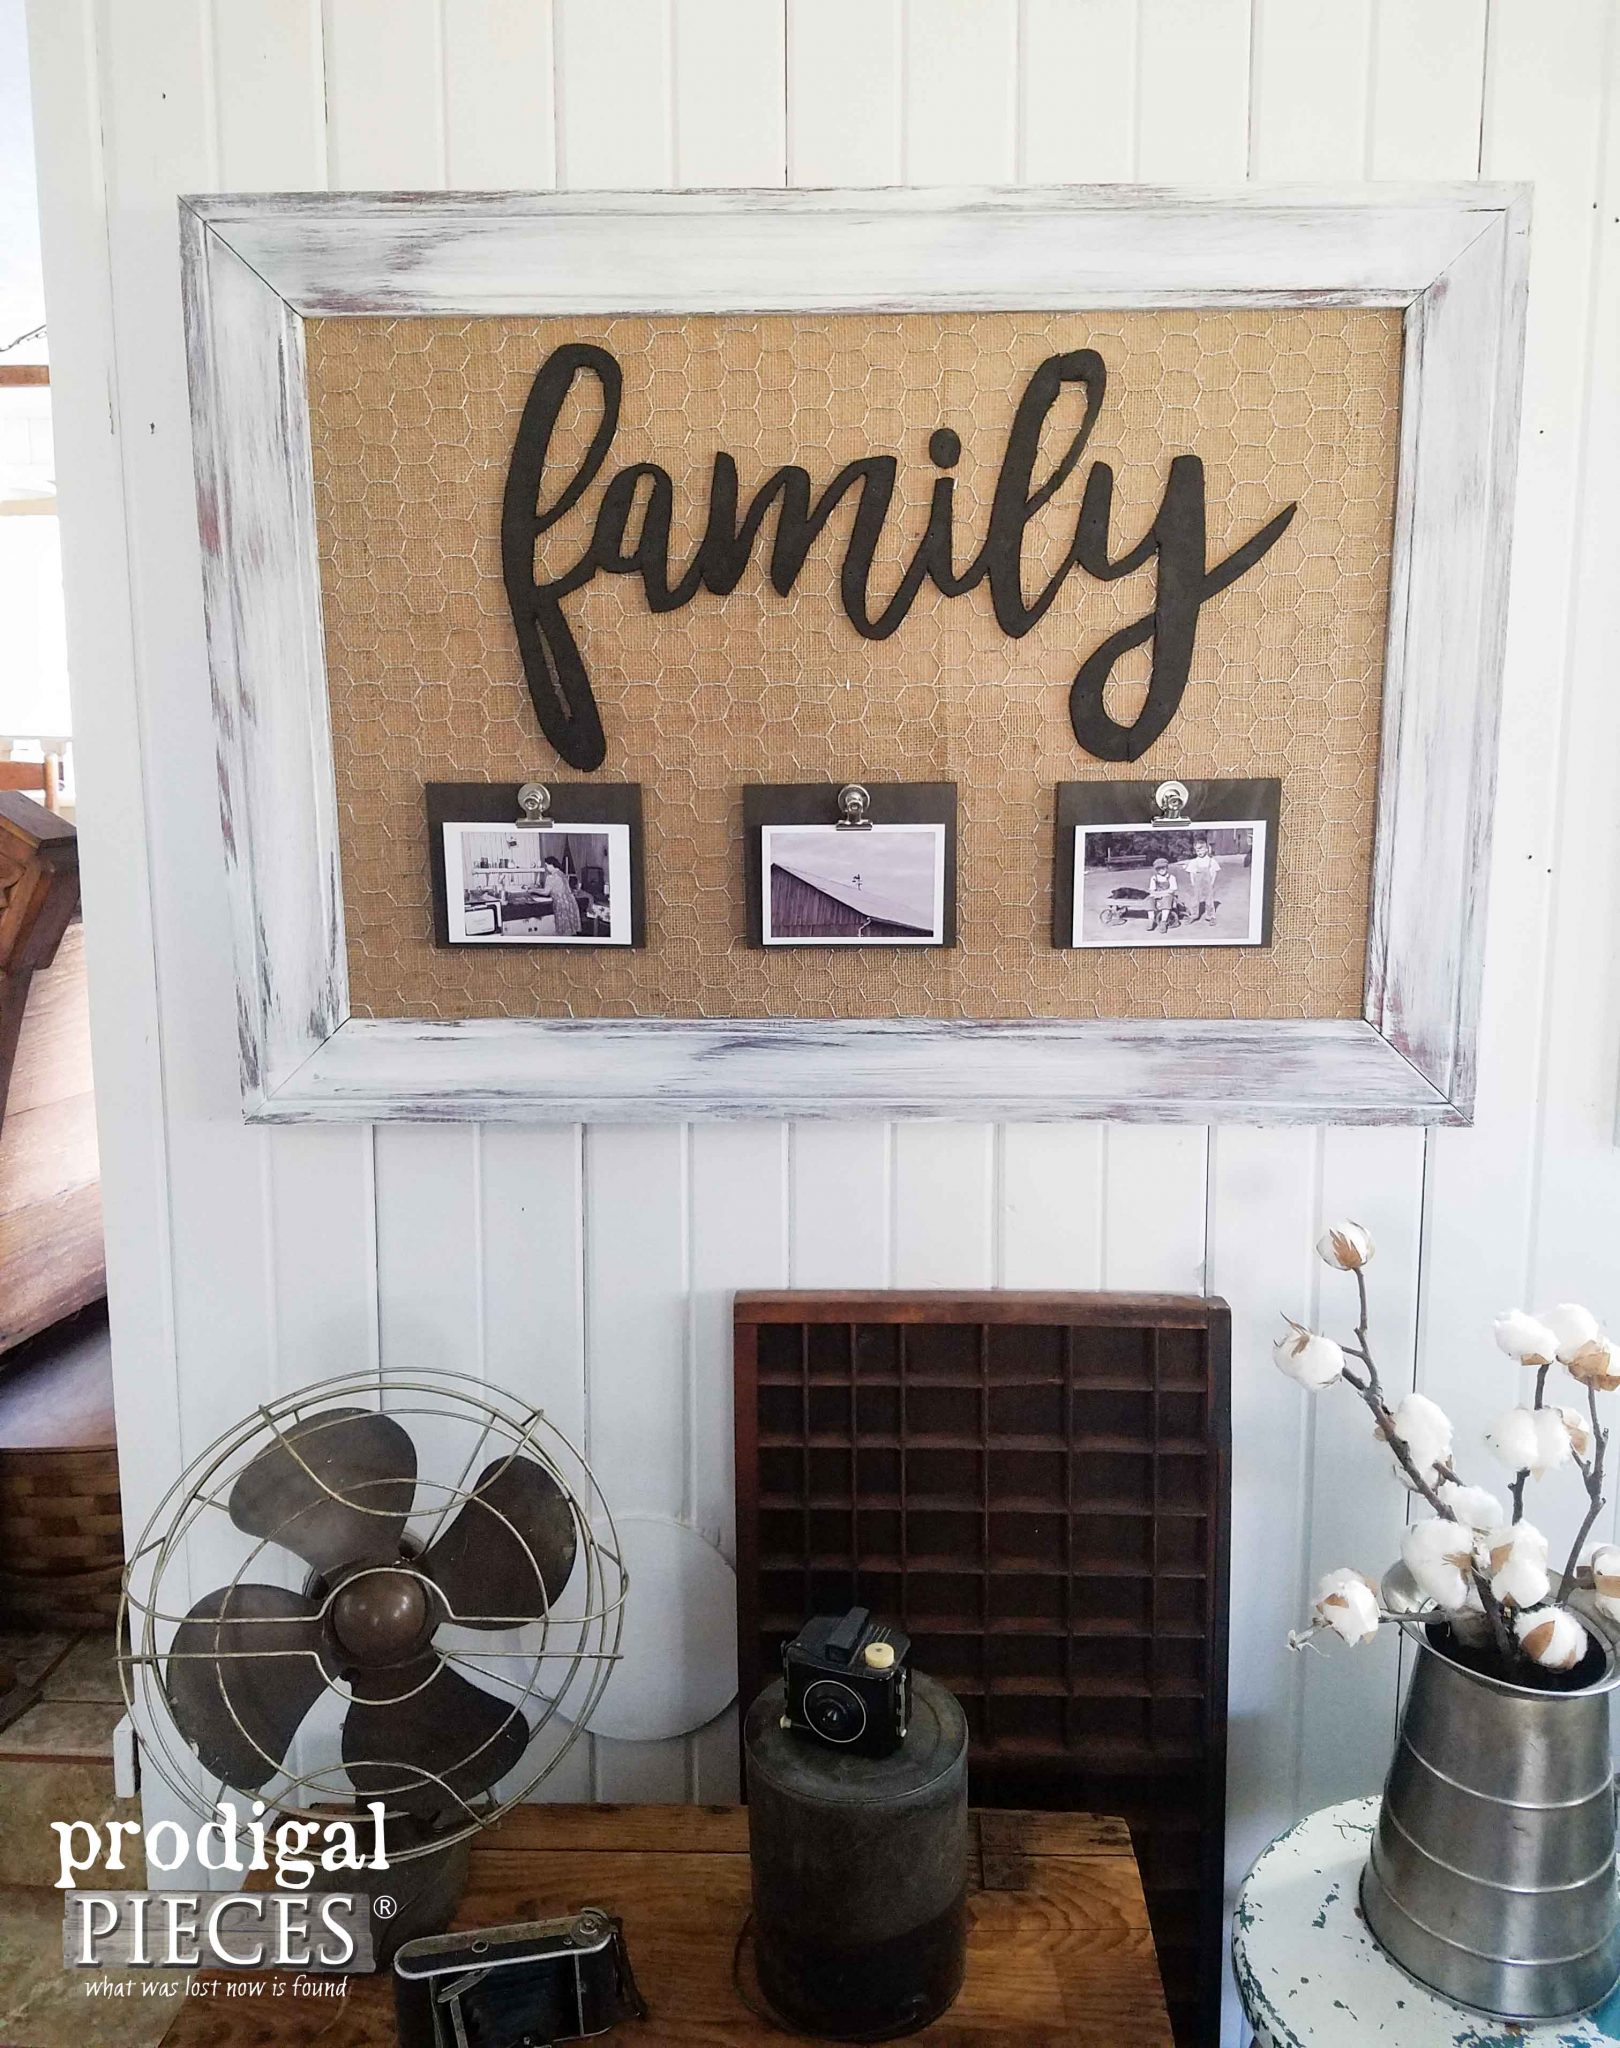 Spectacular Framed Family Wall Art Memory Board by Prodigal Pieces prodigalpieces